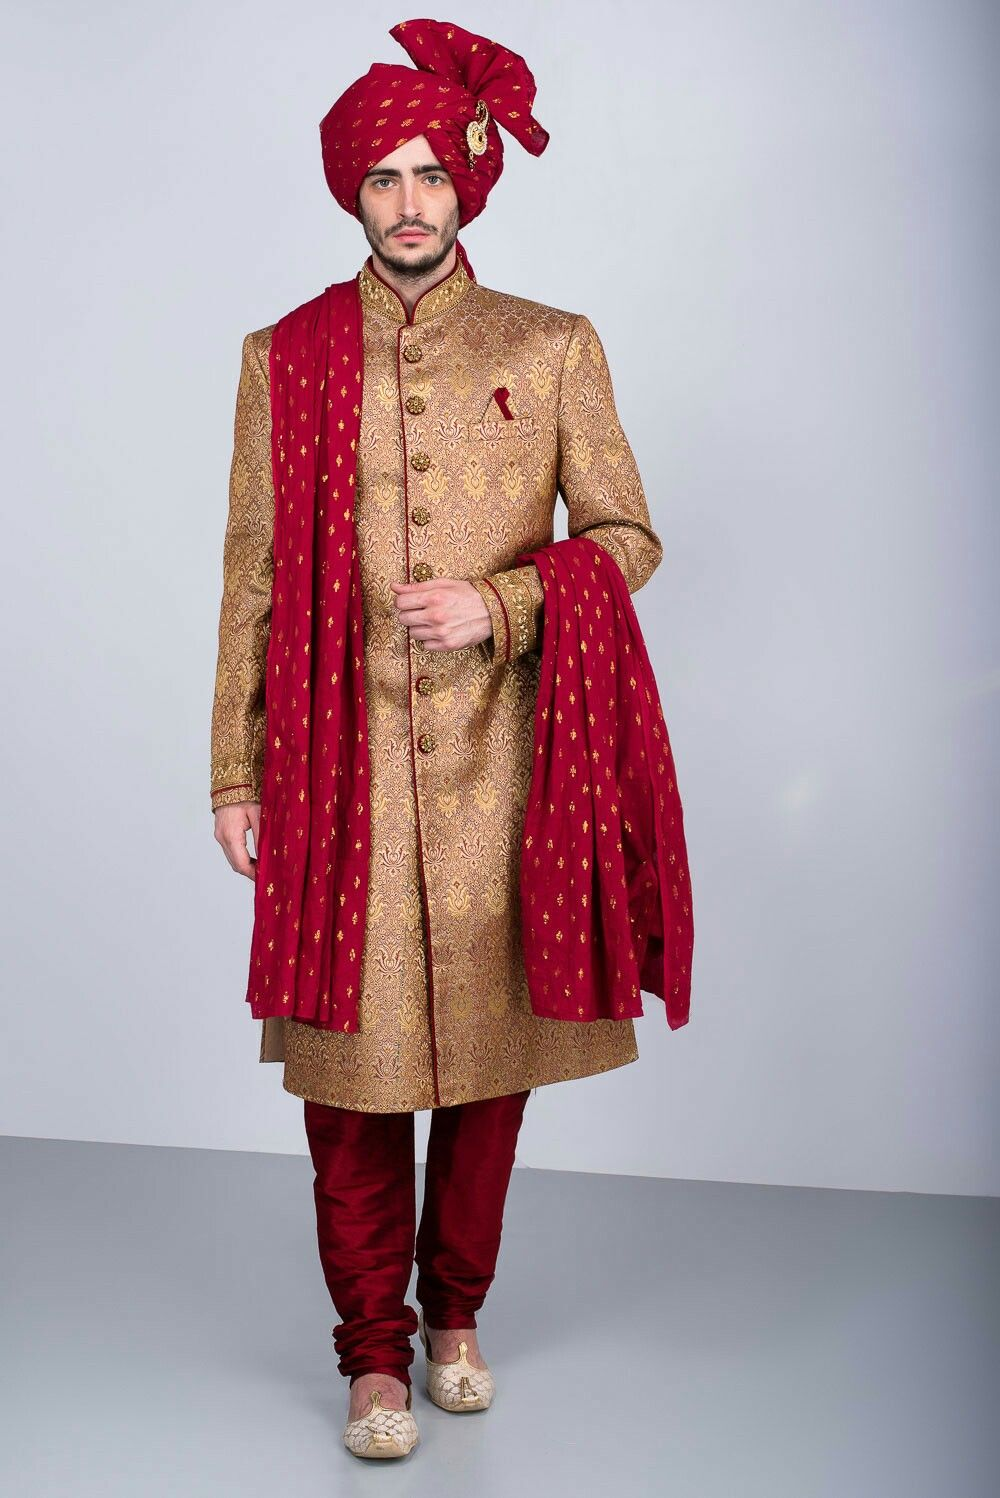 India's largest fashion rental service Sherwani for men